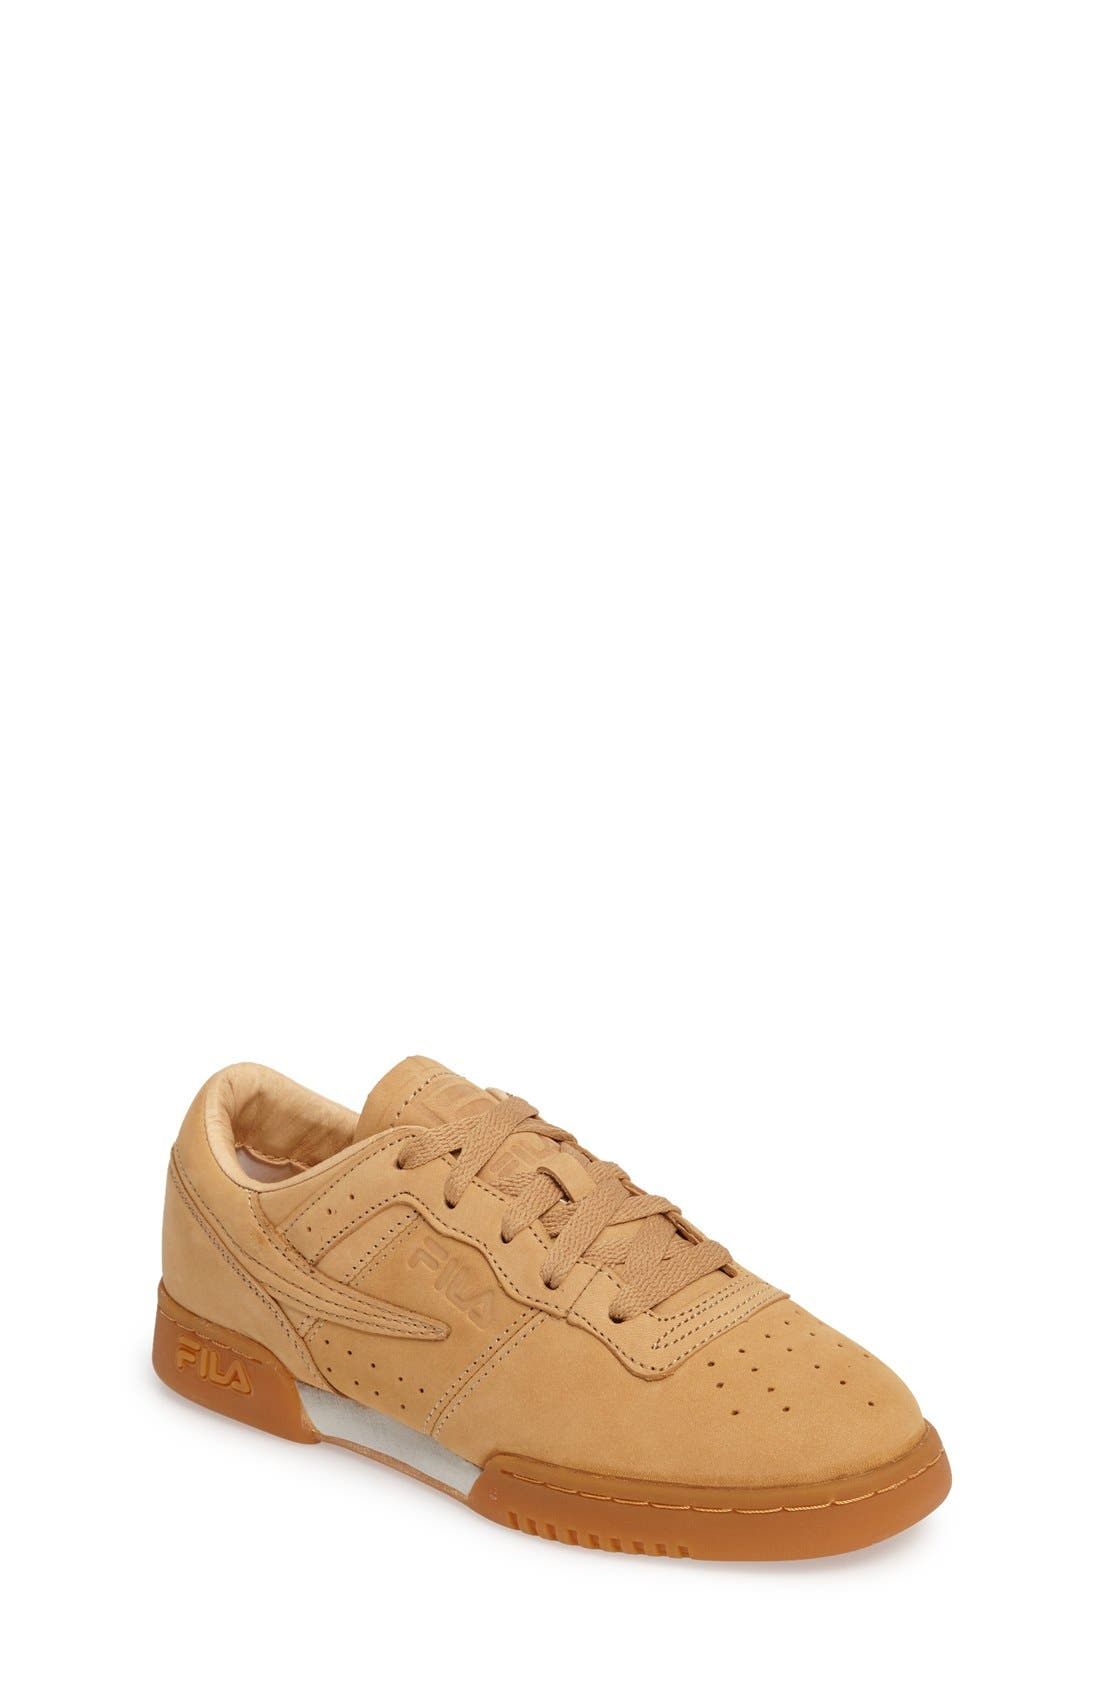 USA Heritage Sneaker,                         Main,                         color,